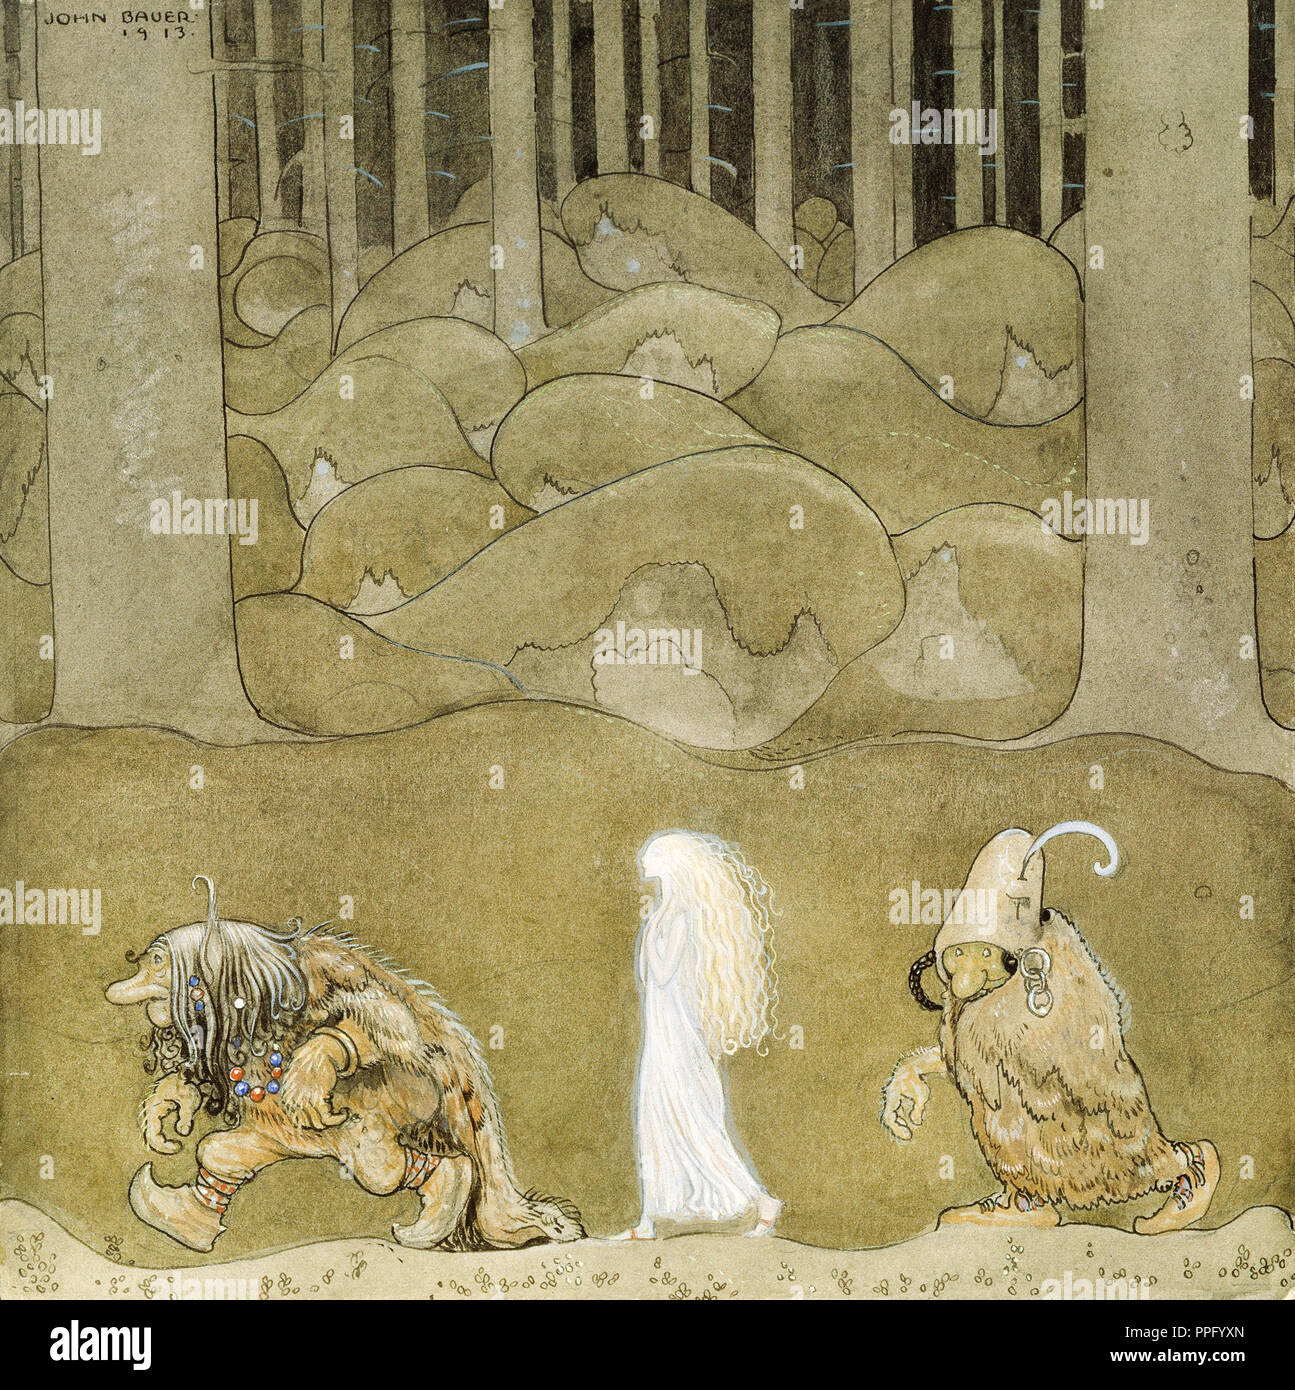 John Bauer - The Princess and the Trolls 1913 Watercolor. Nationalmuseum, Stockholm, Sweden. - Stock Image